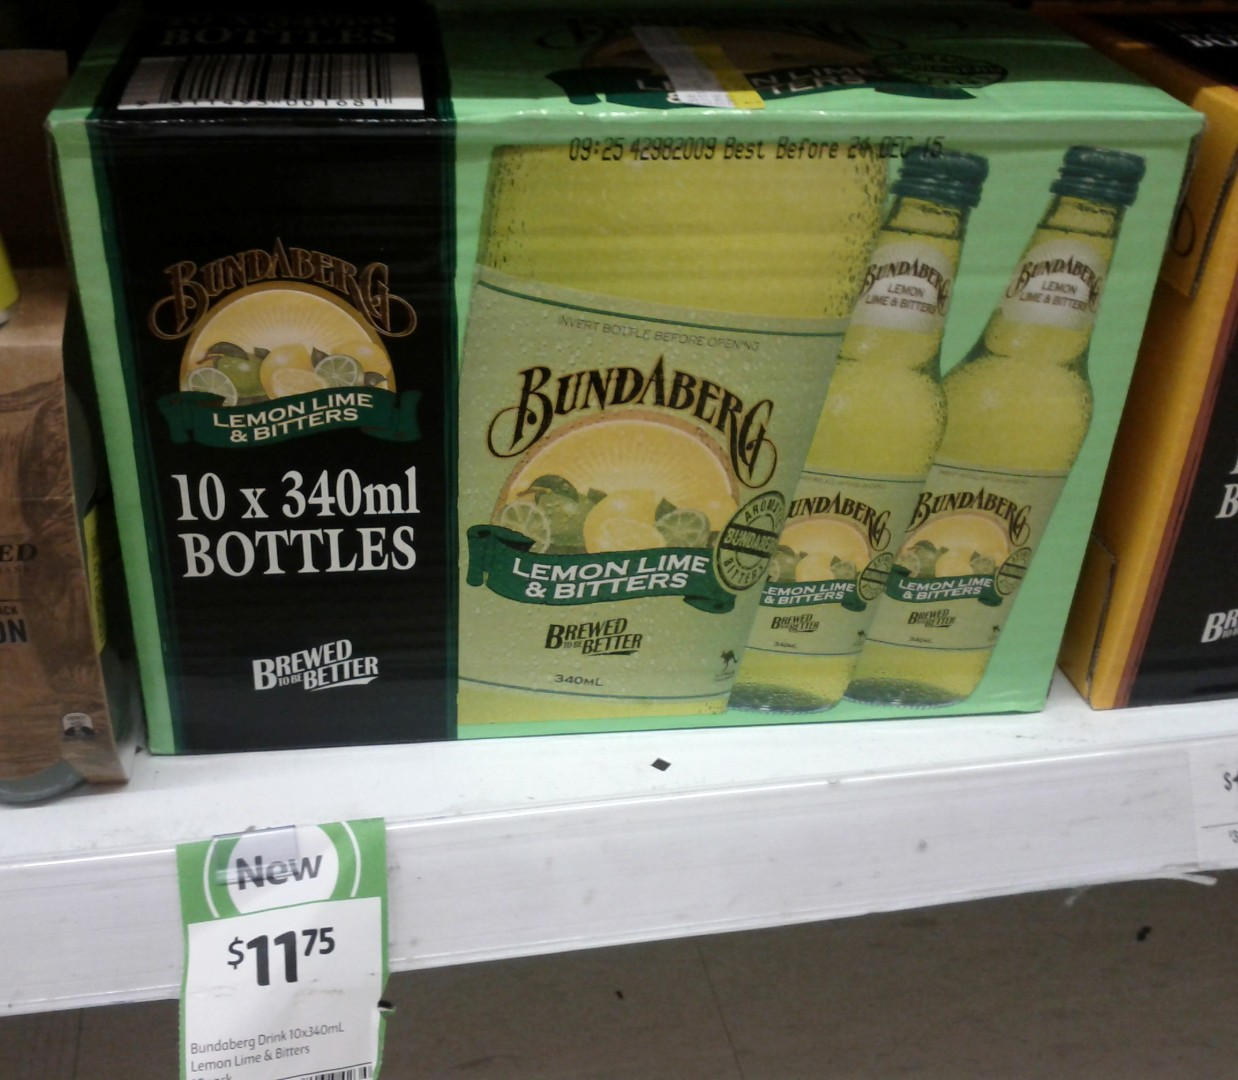 Bundaberg 10x340mL Lemon Lime & Bitters